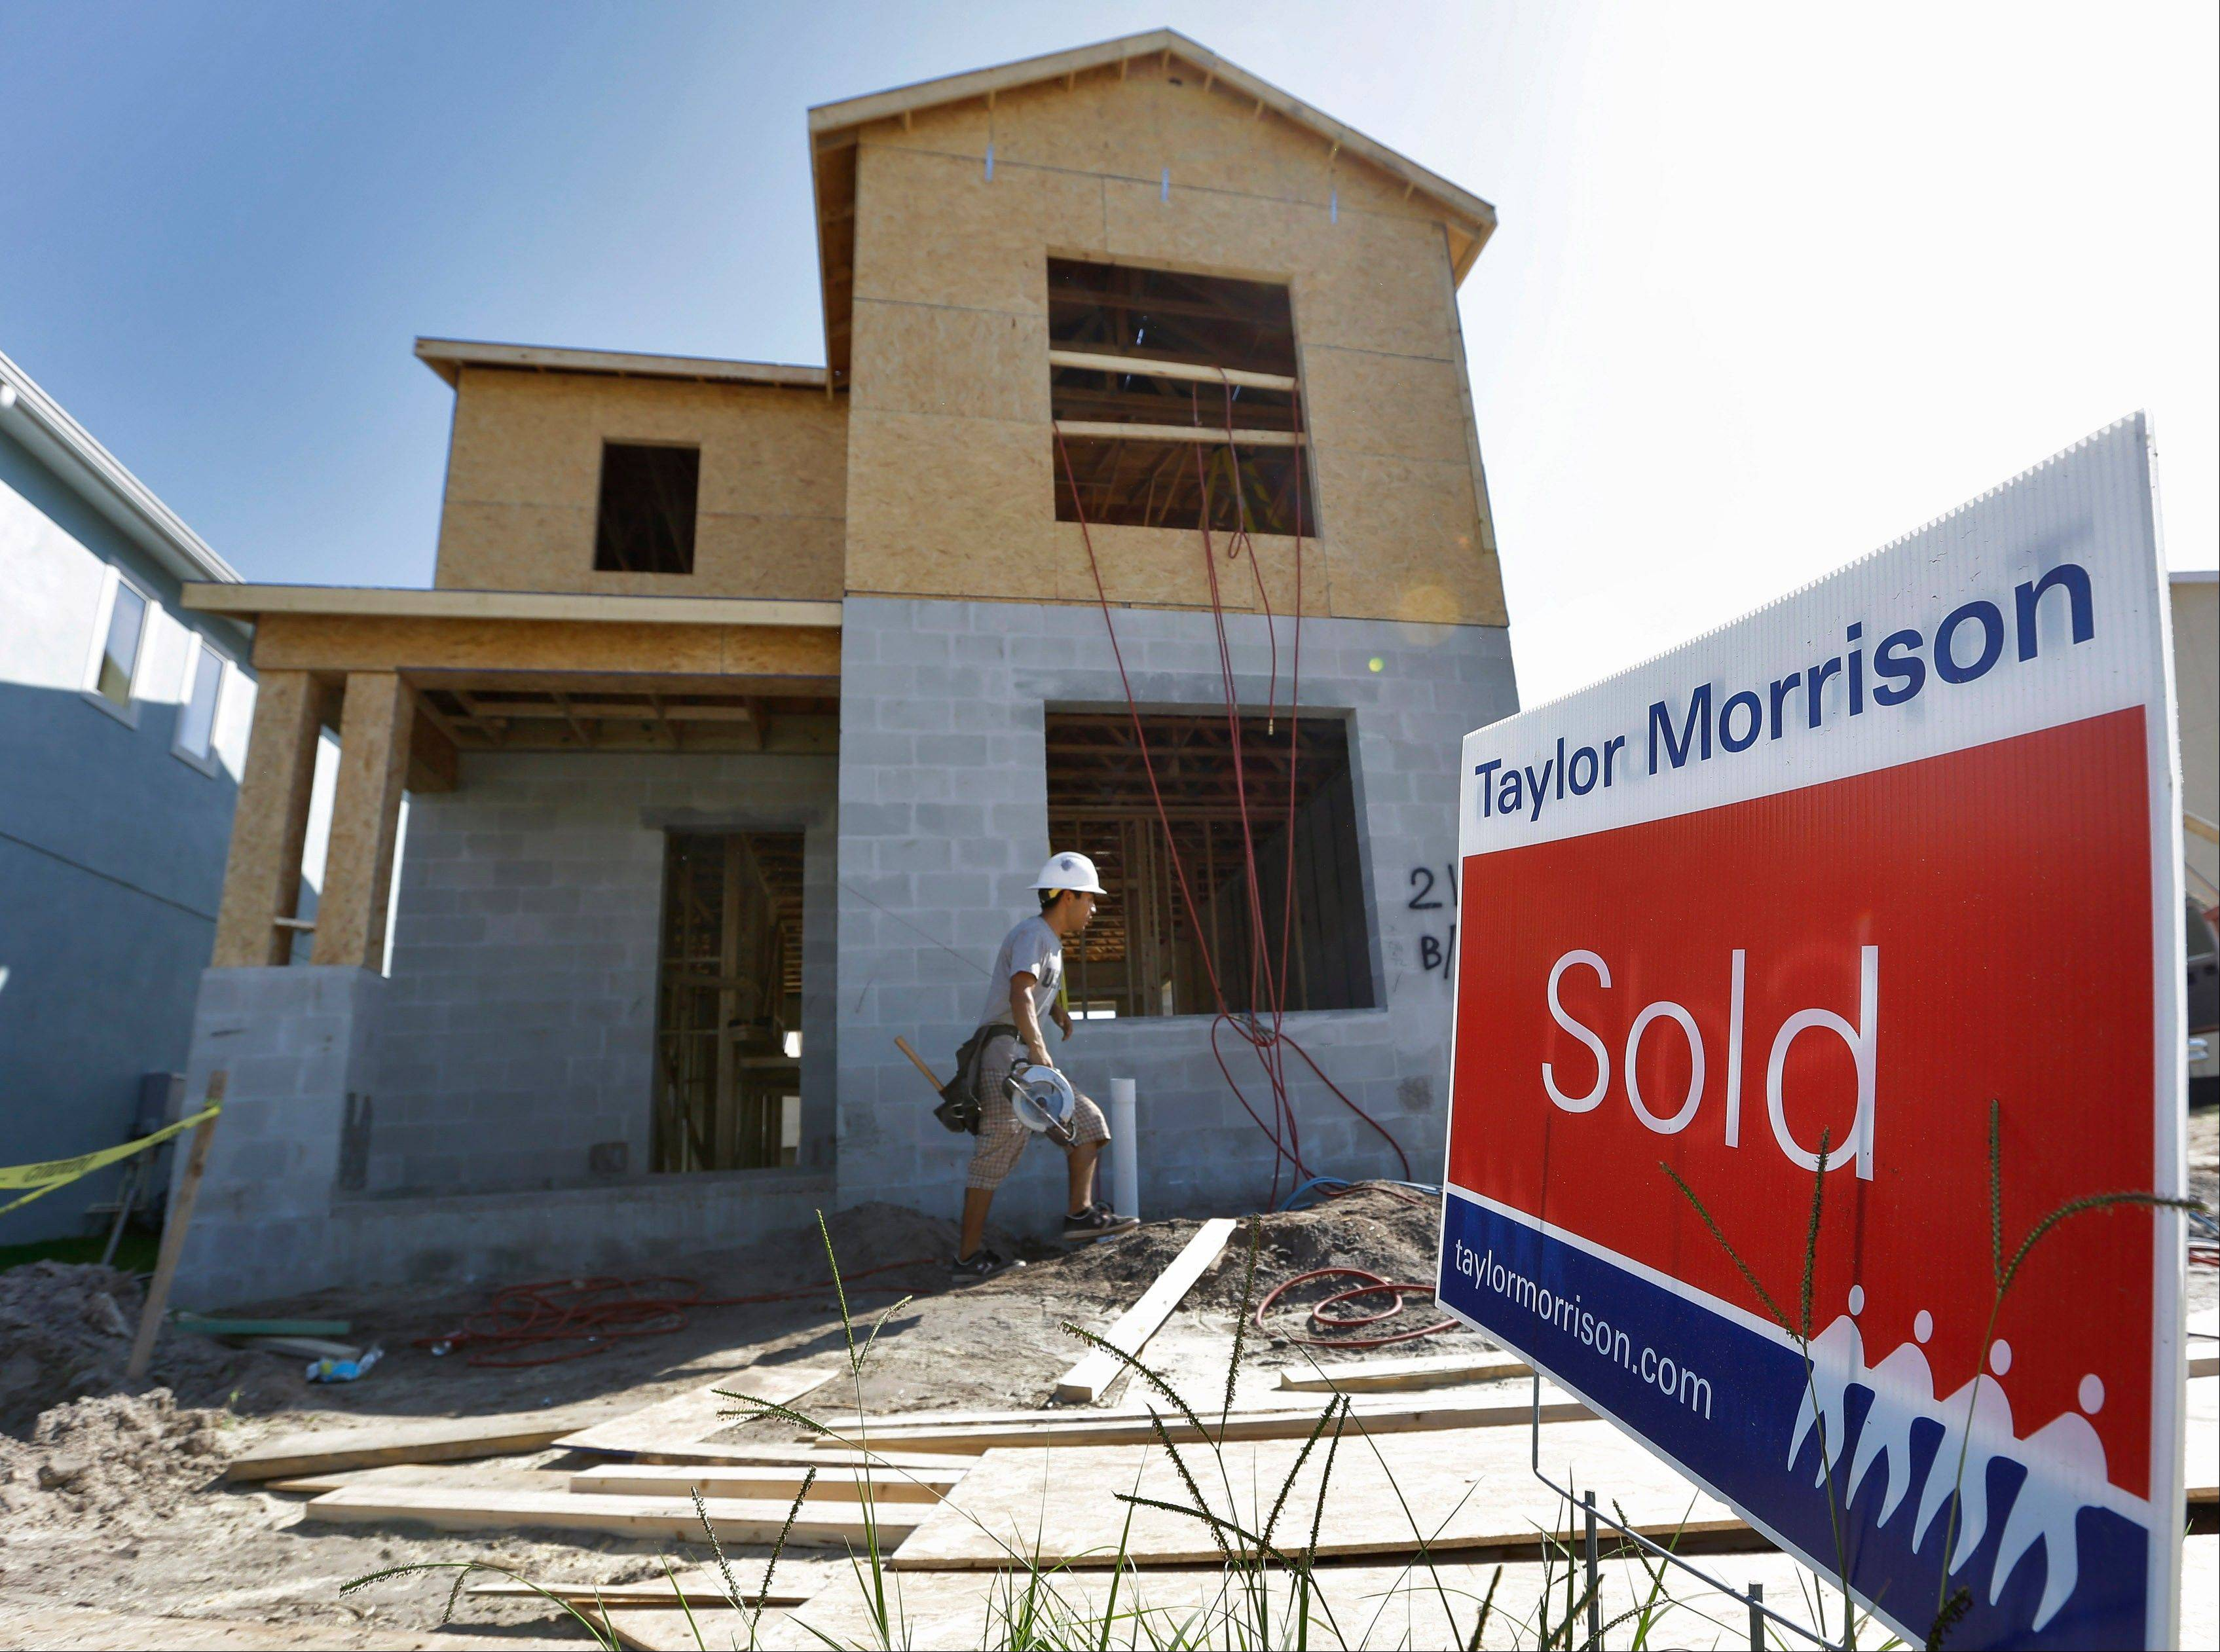 Associated Press Home prices increased in September in most major U.S. cities, more evidence of a housing recovery that is providing a lift to the fragile economy.